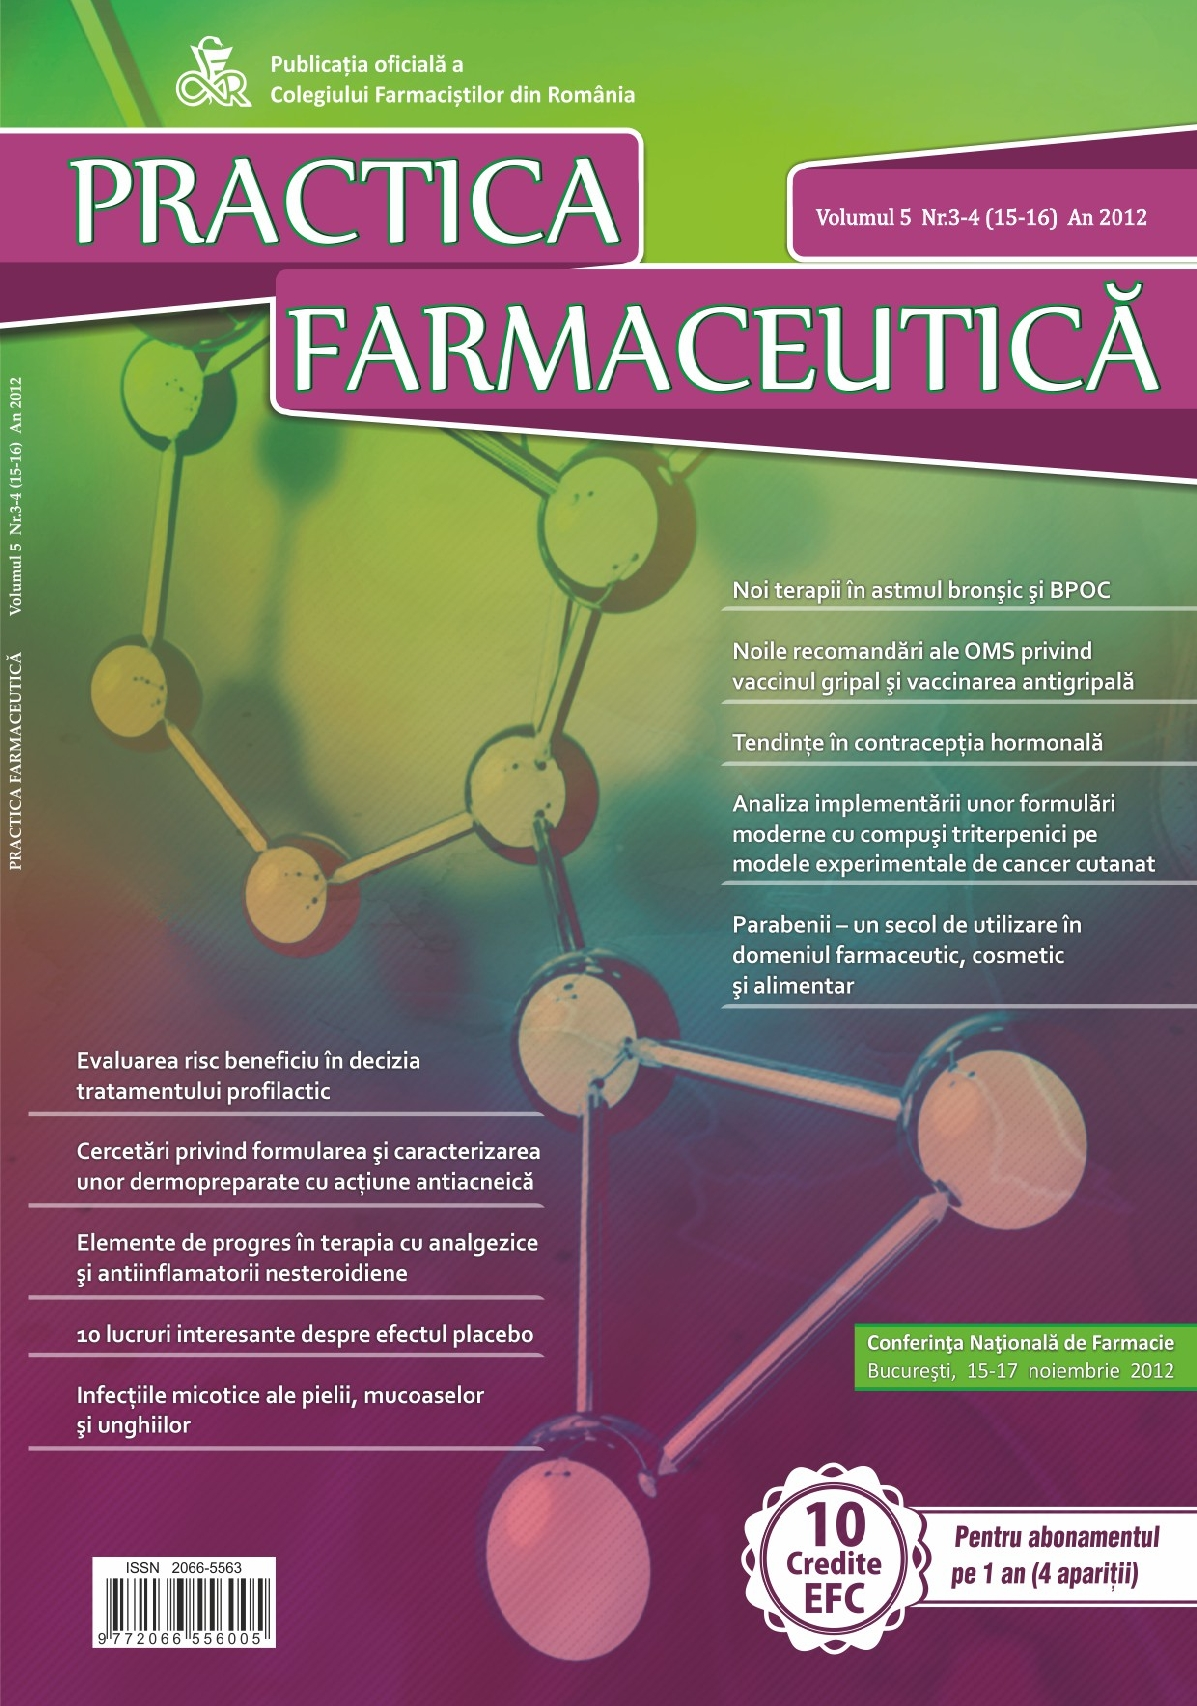 Revista Practica Farmaceutica, Vol. 5, Nr. 3-4 (15-16), 2012